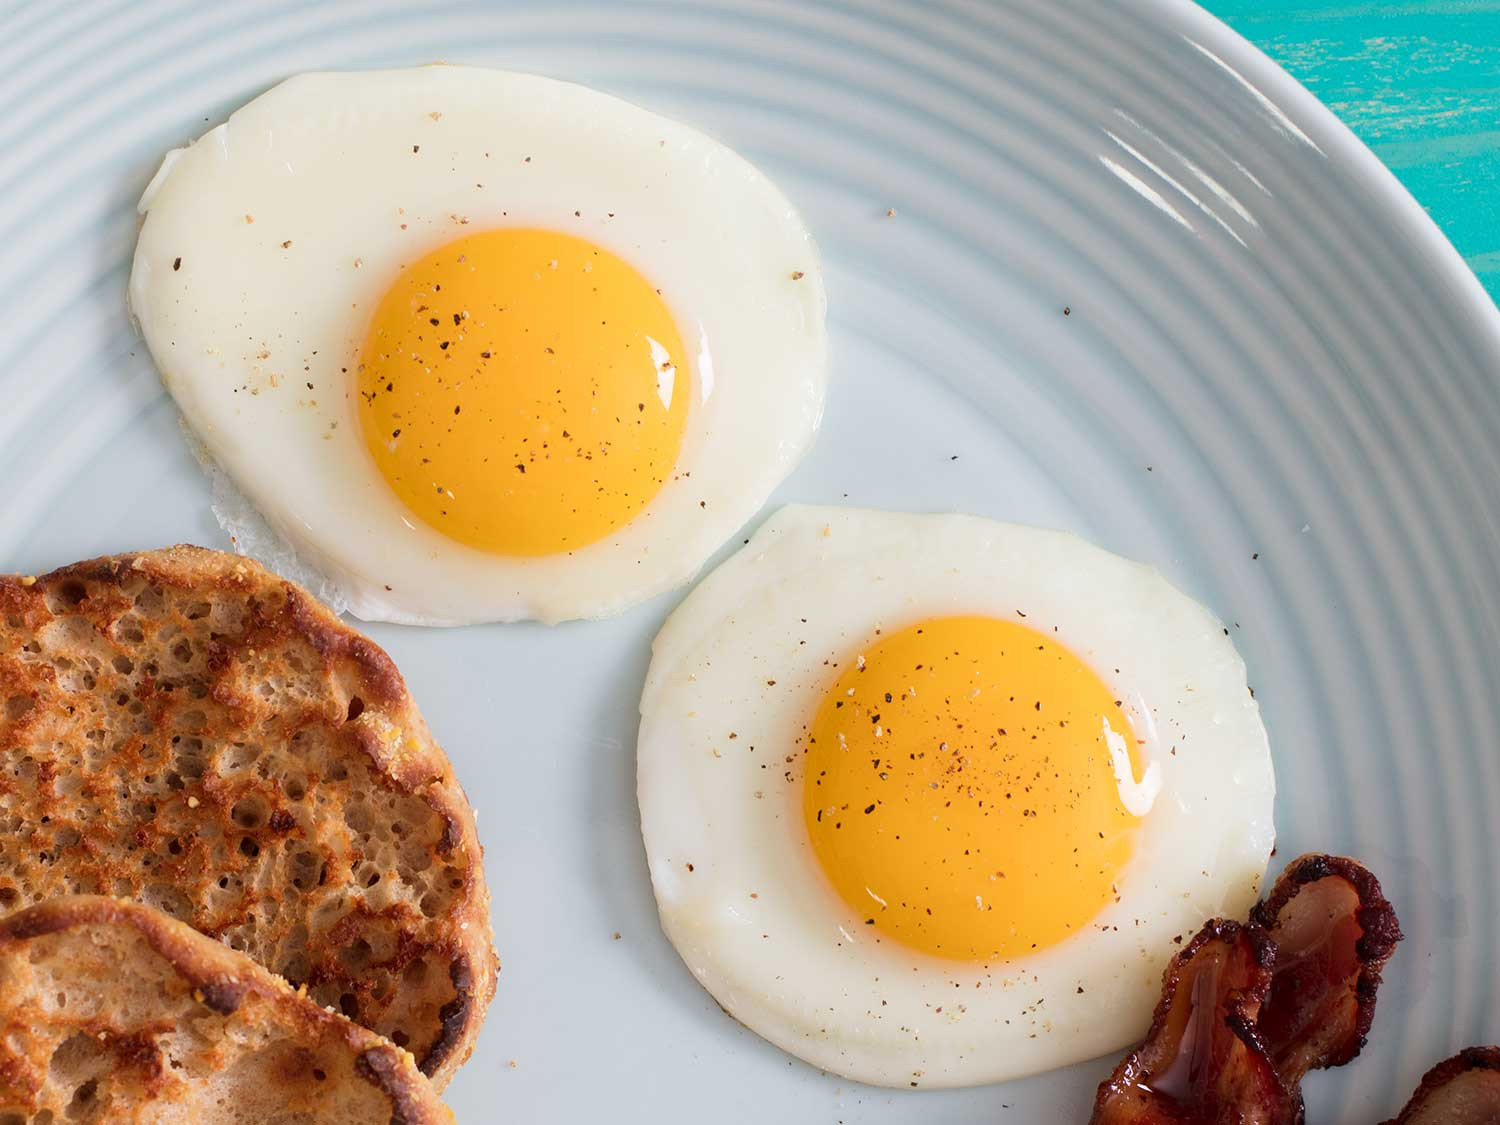 Egg Breakfast Recipes  24 Egg Breakfast Recipes to Start Your Day